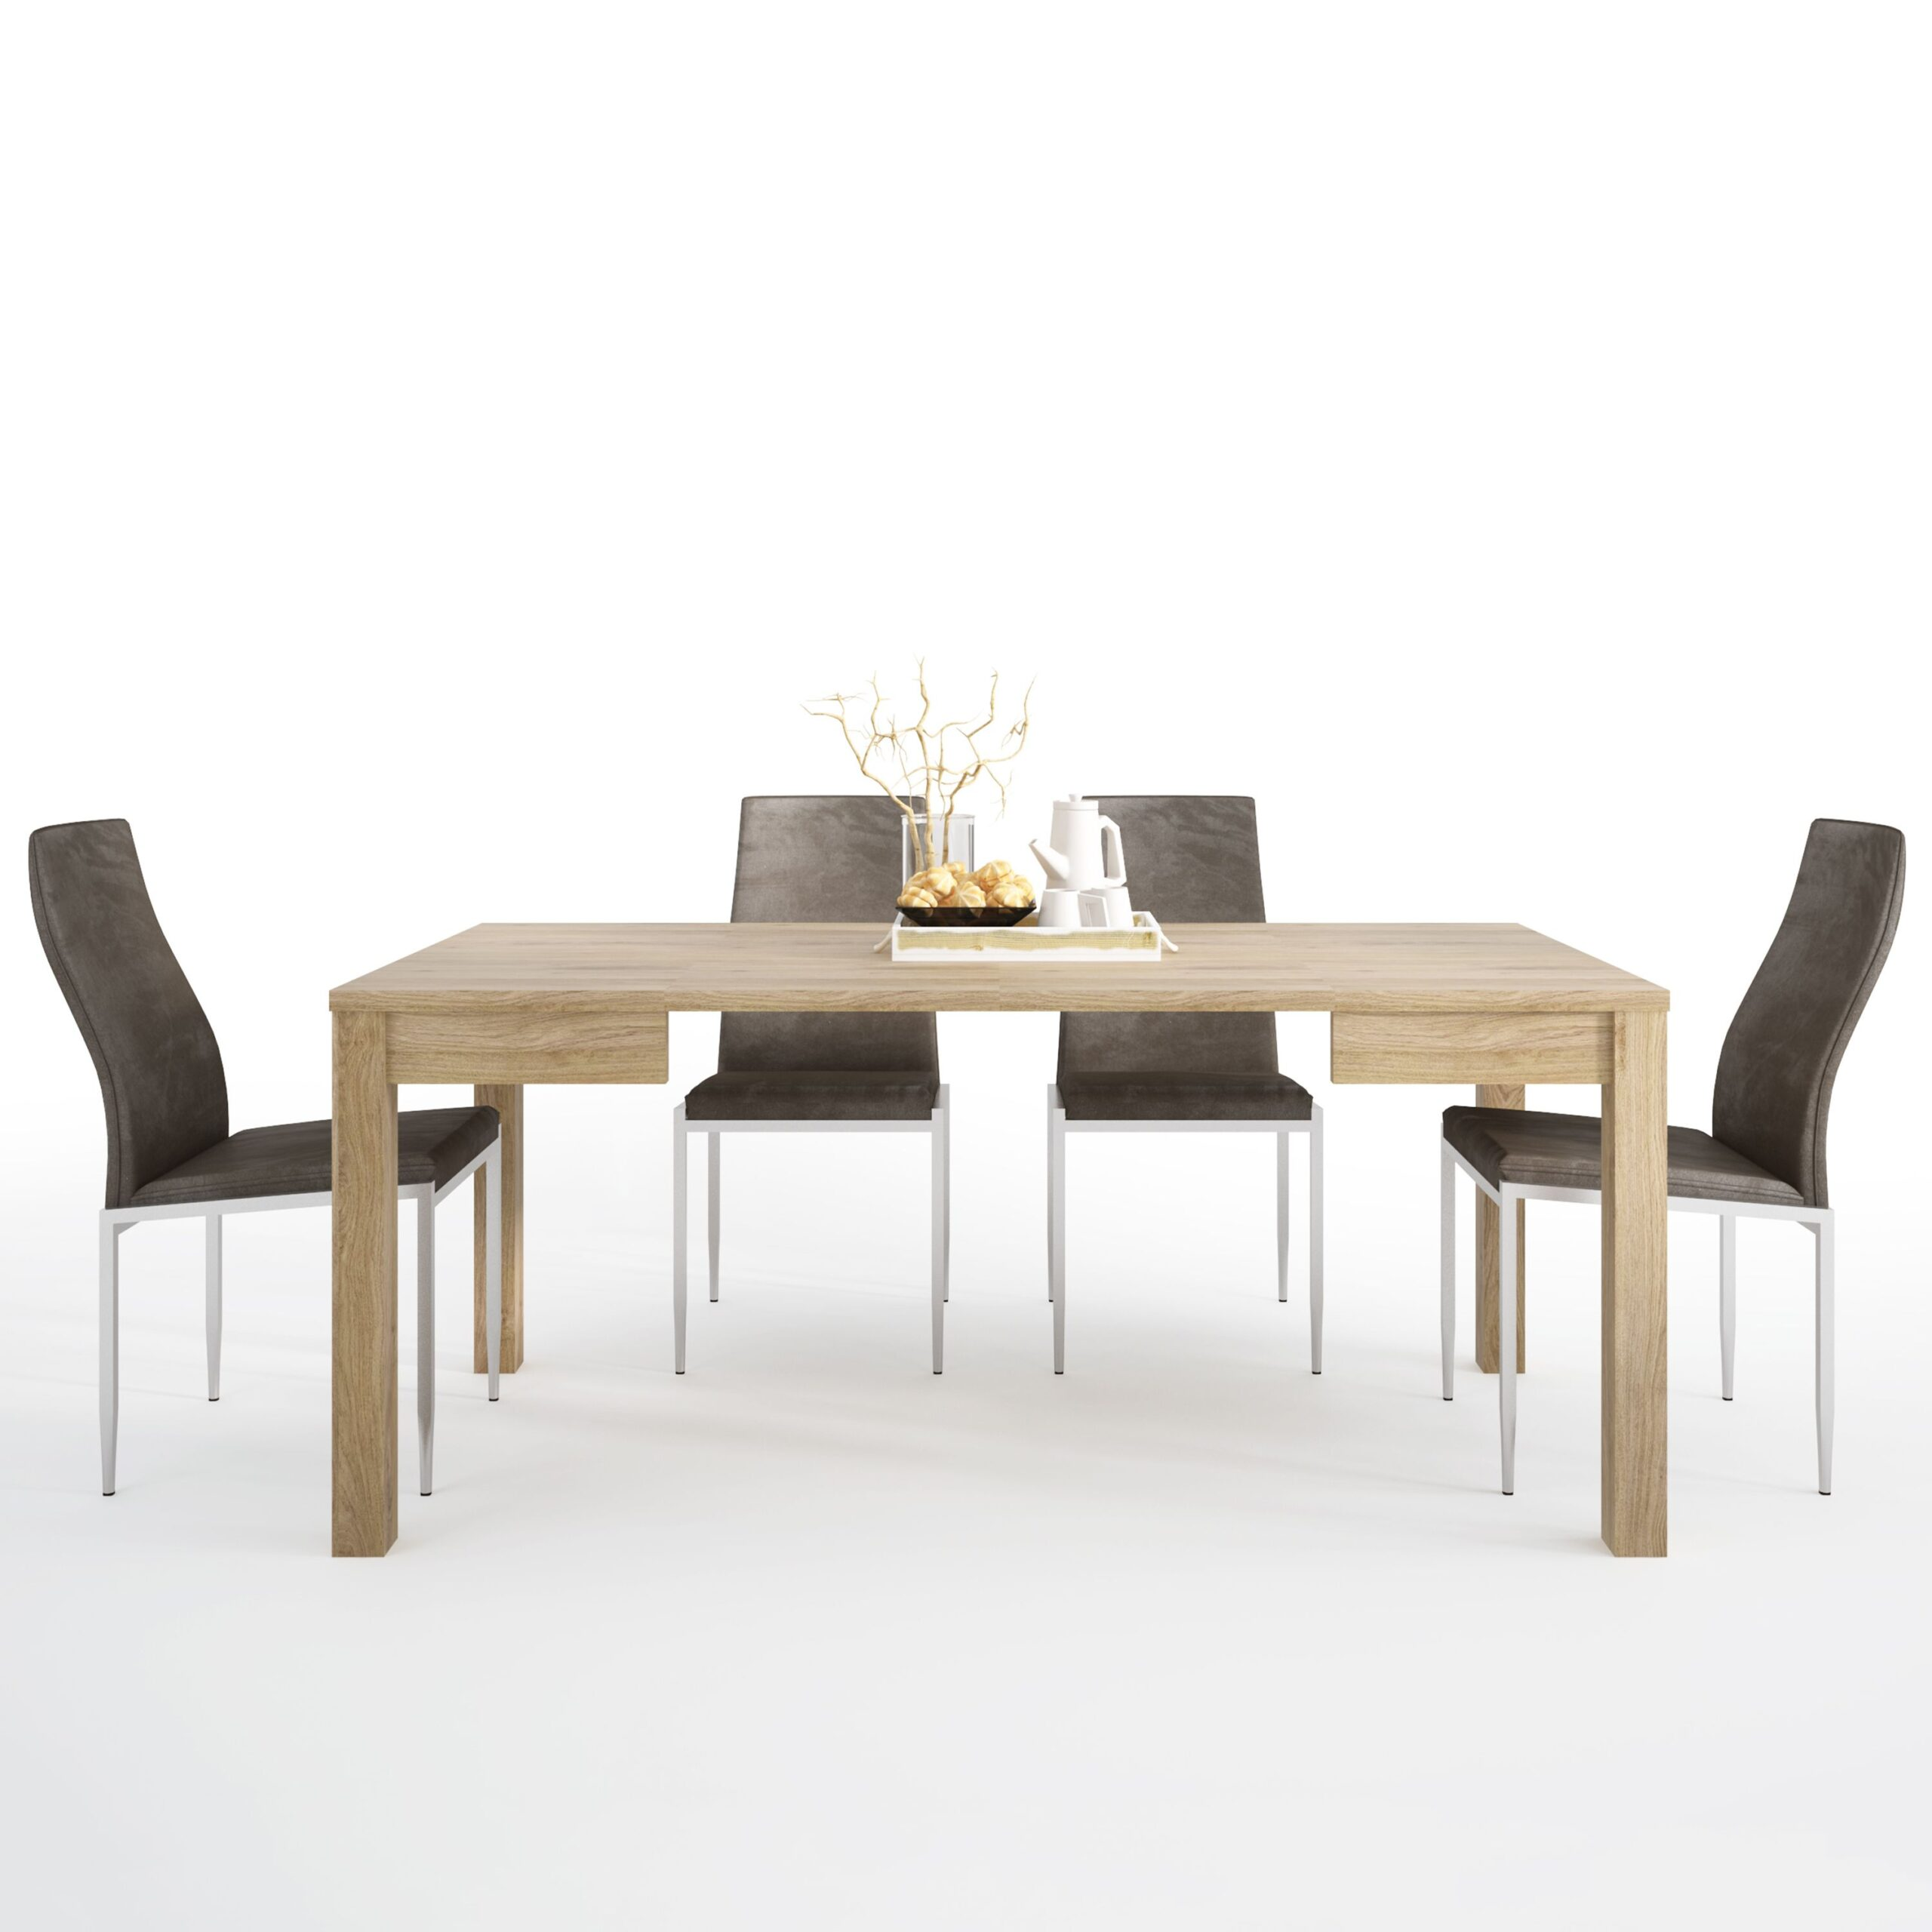 TiaMaria Dining set package TiaMaria Extending Dining Table + 4 Lillie High Back Chair Dark Brown.